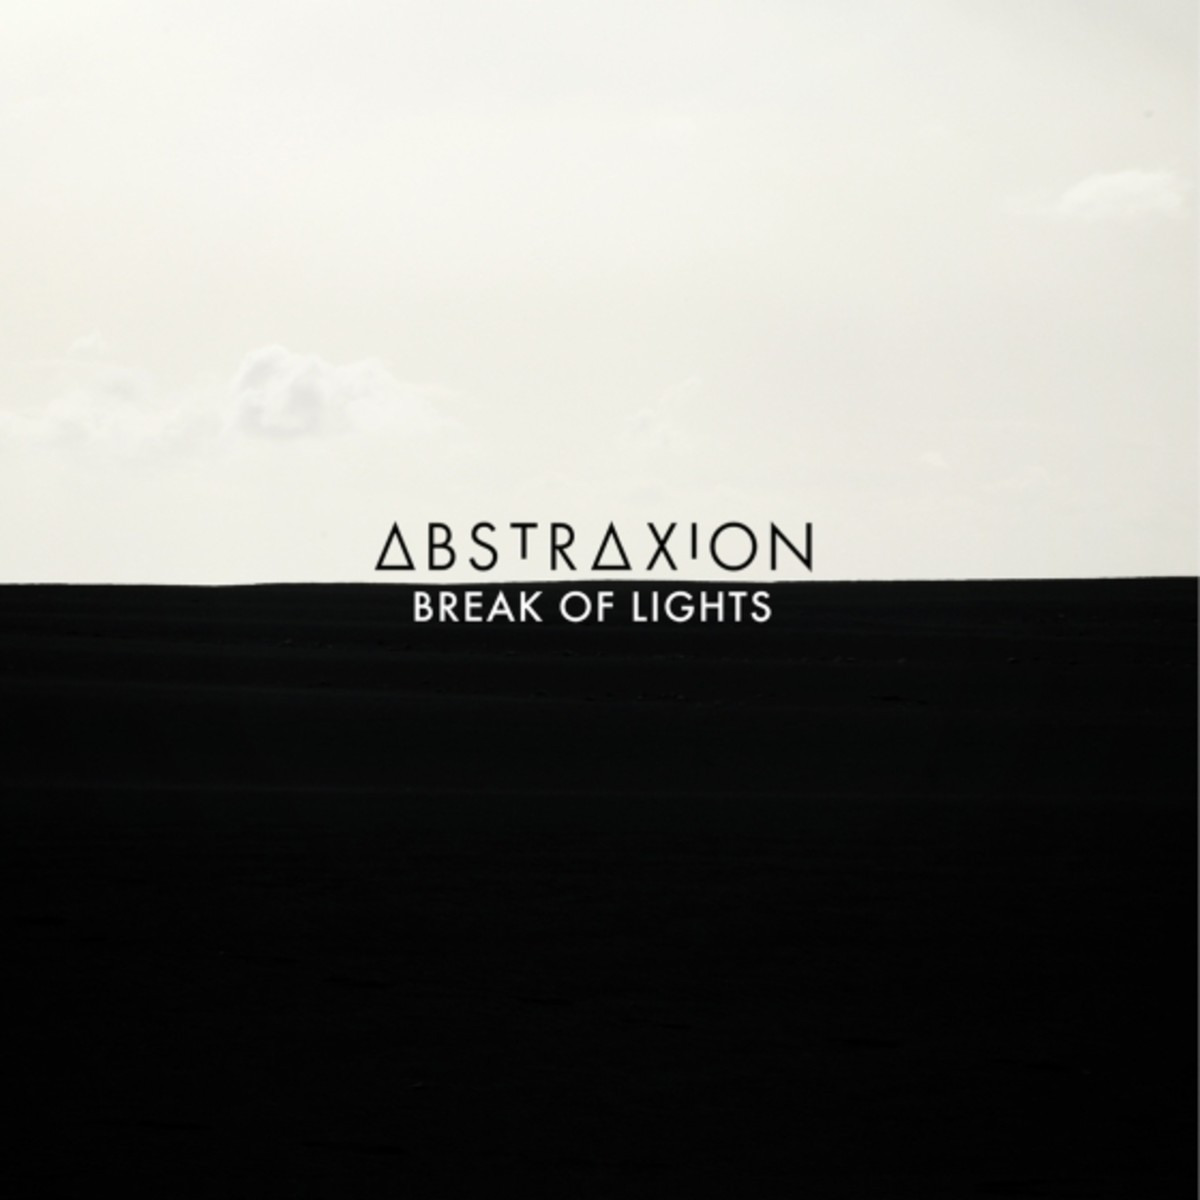 Abstraxion Releases 'Break Of Lights' Album Via HAKT Recordings - New Electronic Music